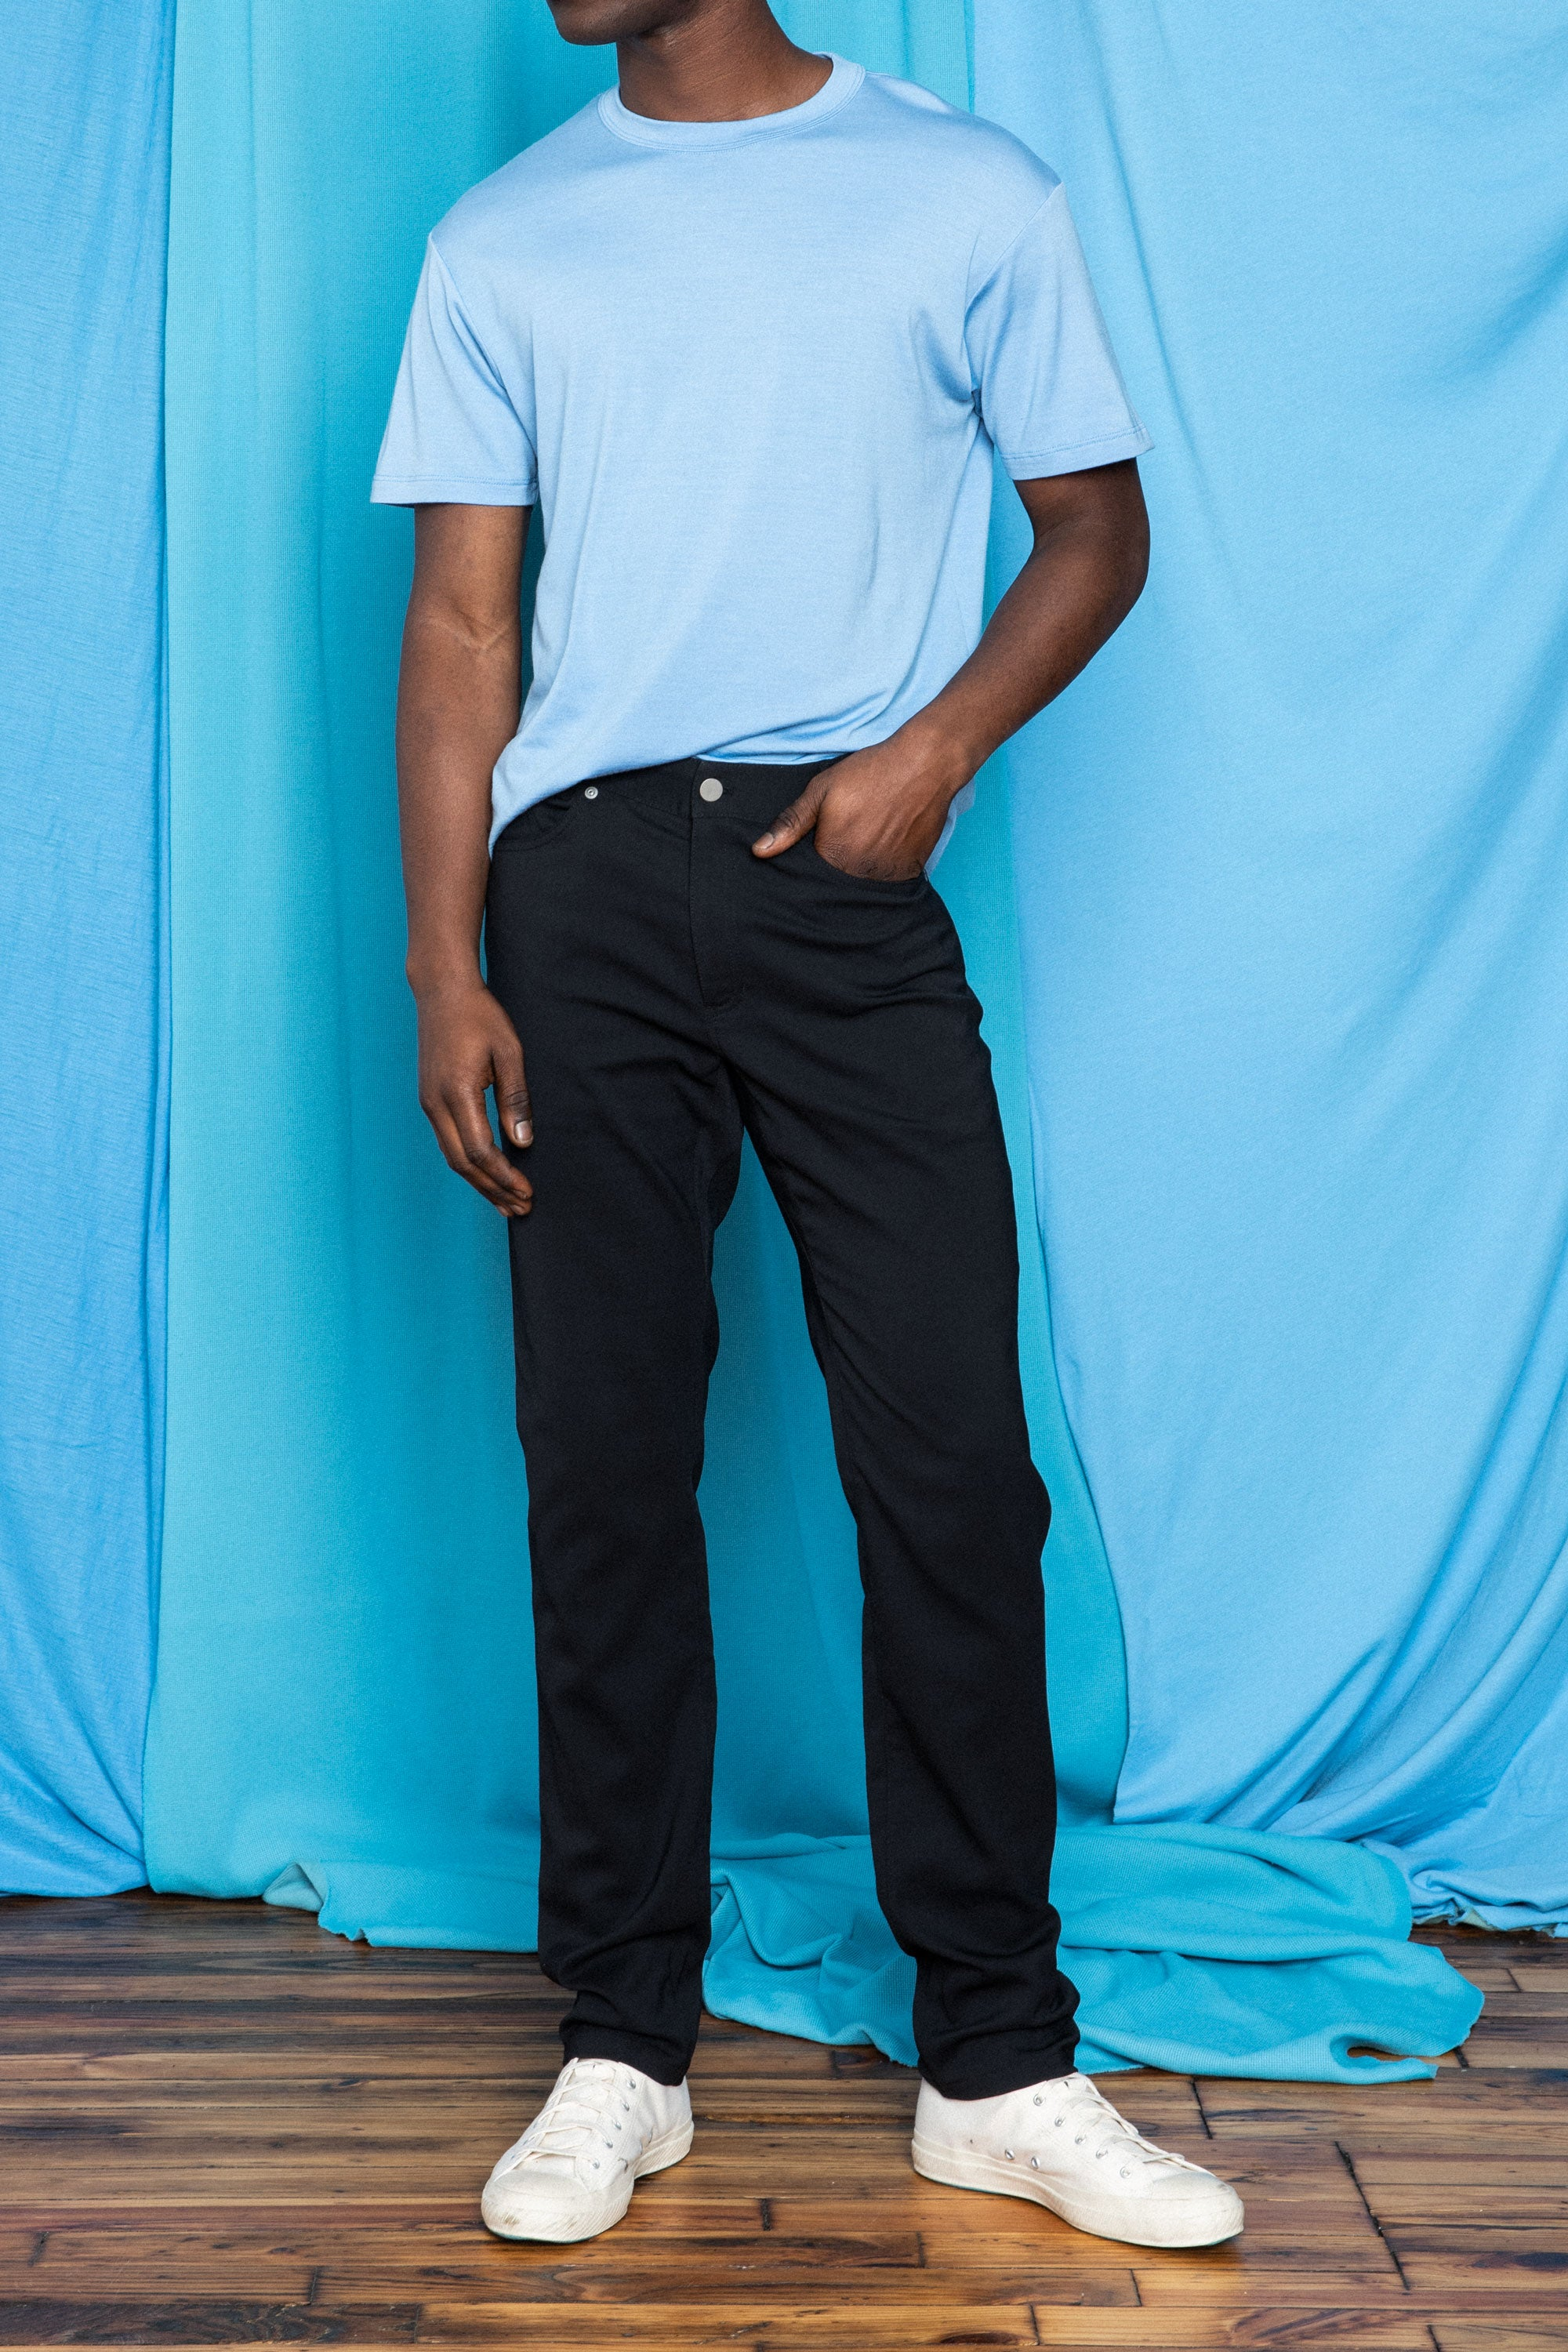 Torey in the Ultrafine Merino Cut Two T-Shirt in High Blue and the Strong Dungarees in Black, front view